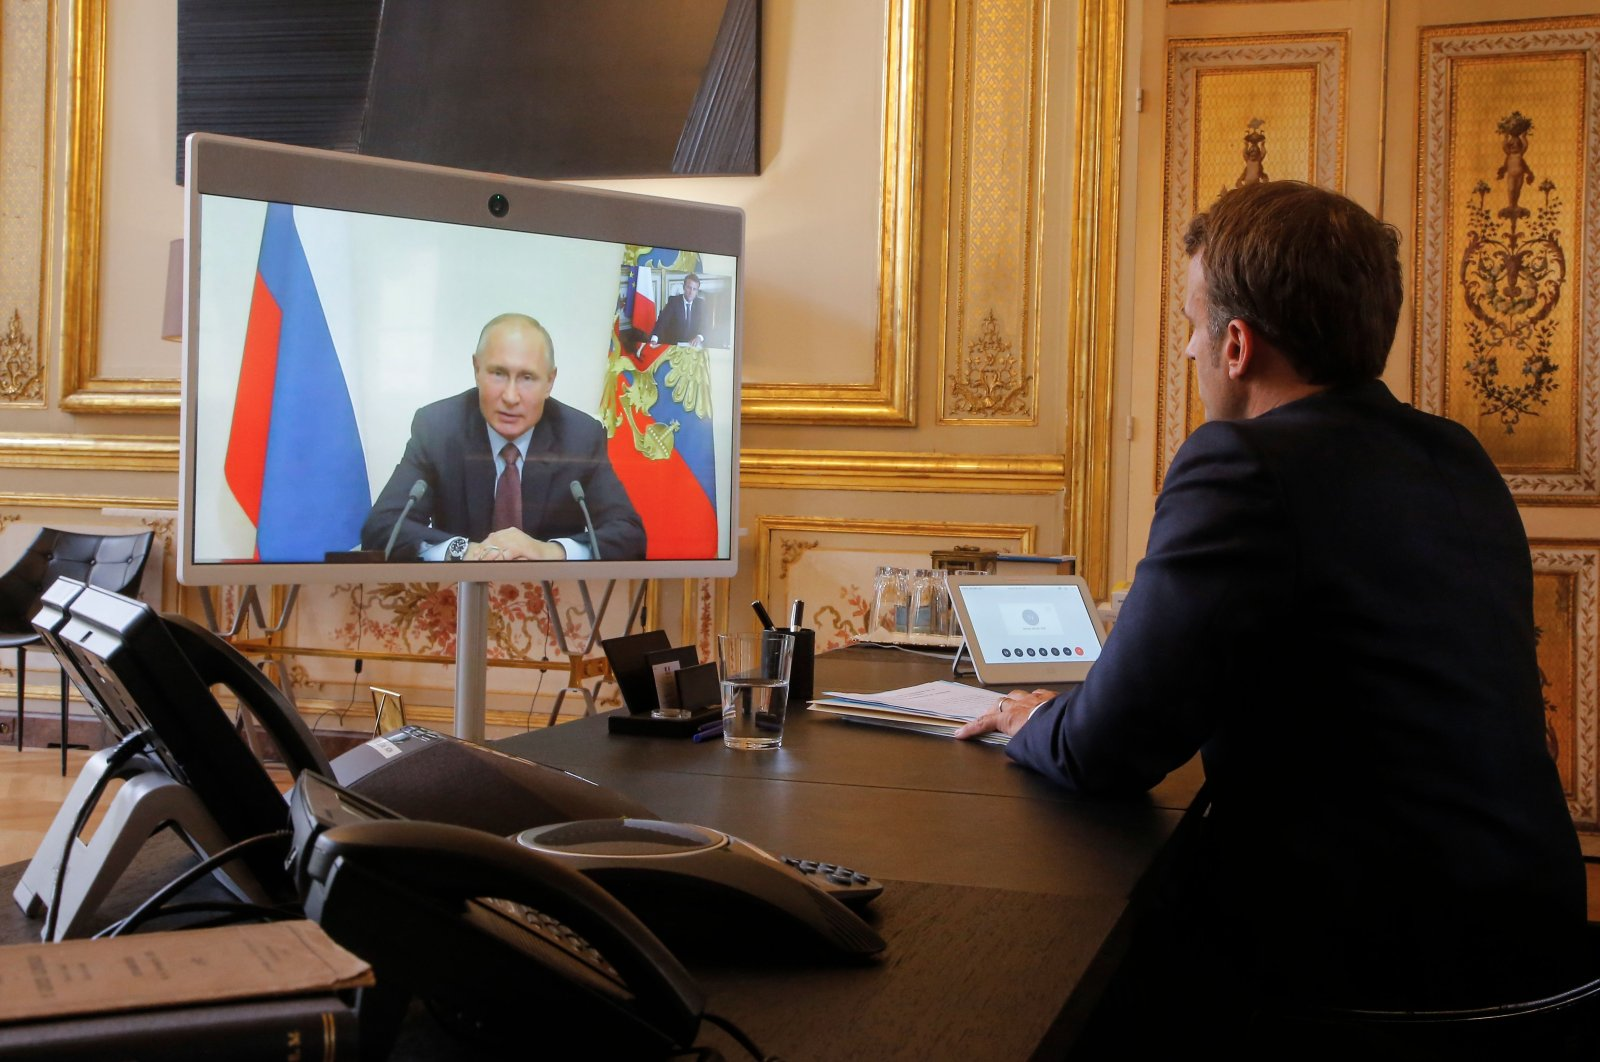 French President Emmanuel Macron talks to Russian President Vladimir Putin during a video conference on June 26, 2020. (AFP Photo)